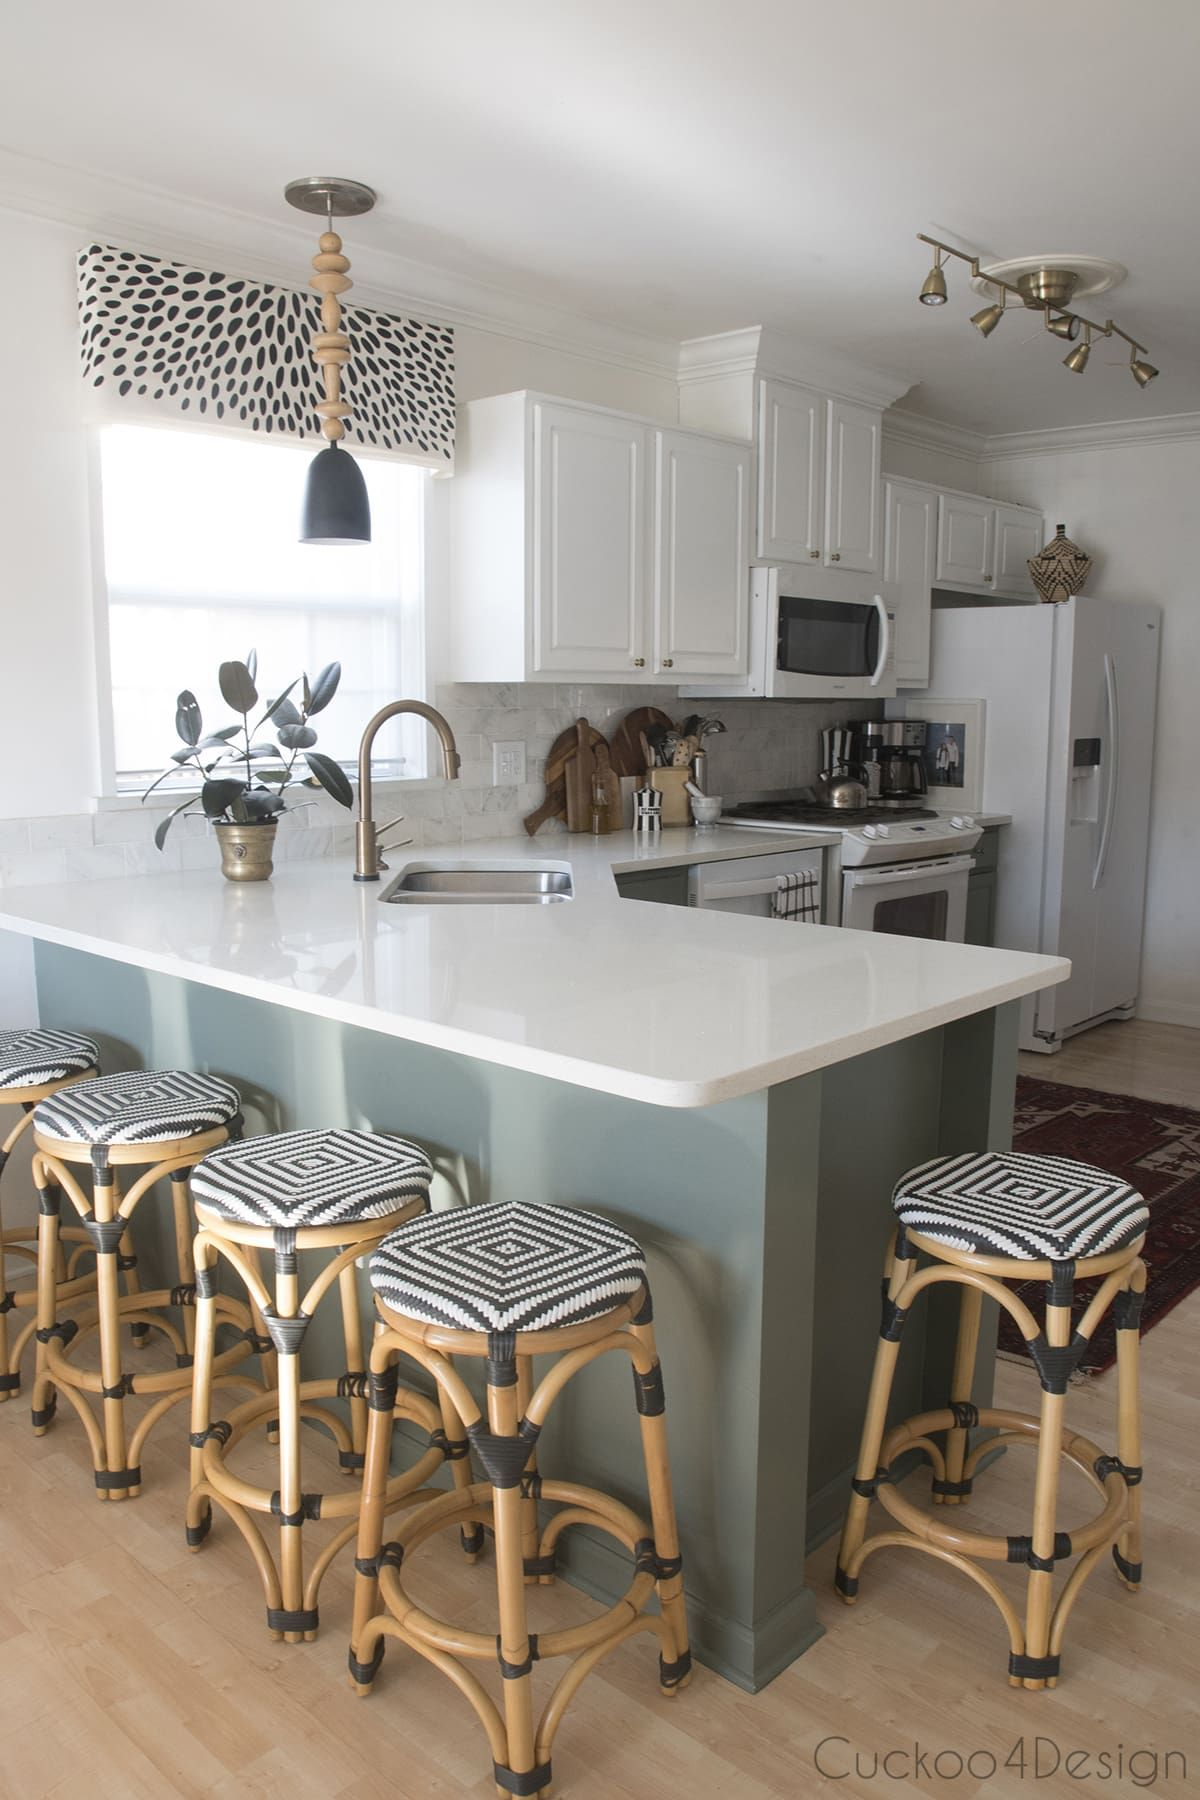 Turning My White Laminate Builder Grade Kitchen Into A Green And White Two Toned Kitchen Cuckoo4design Interior Design Kitchen Painting Kitchen Cabinets White Trendy Kitchen